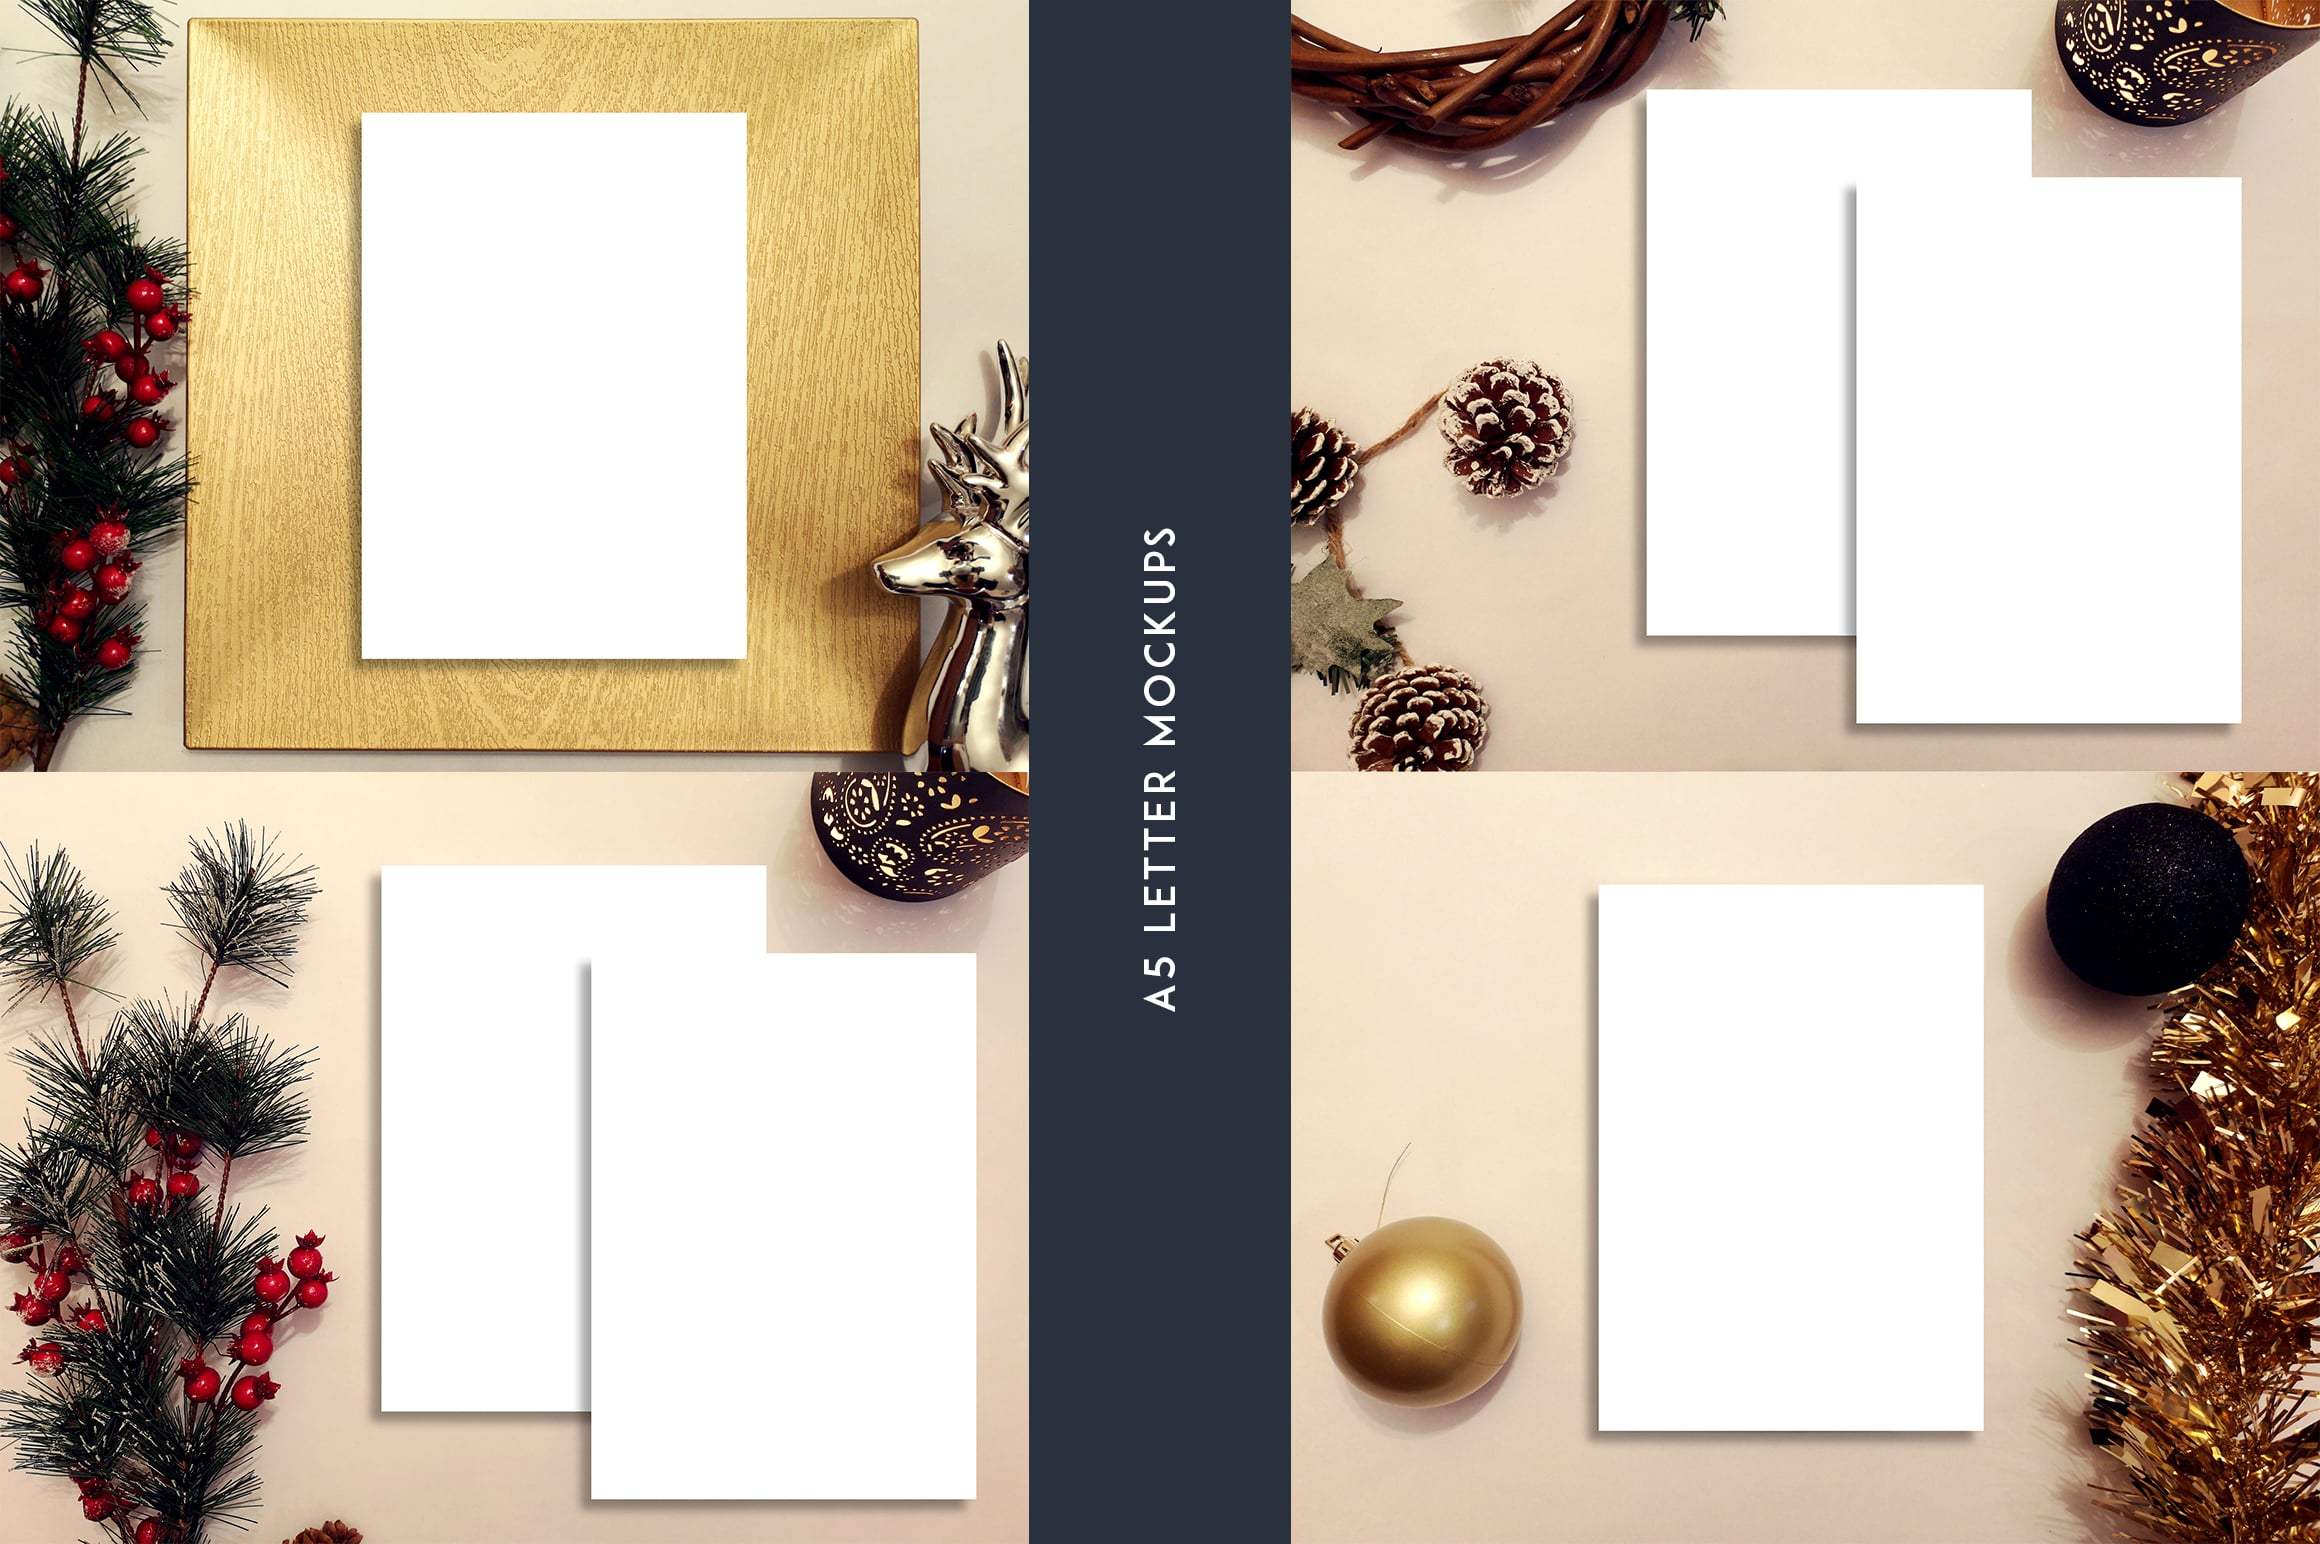 12 Christmas Mockups + Backgrounds - $9 ONLY - 4 3